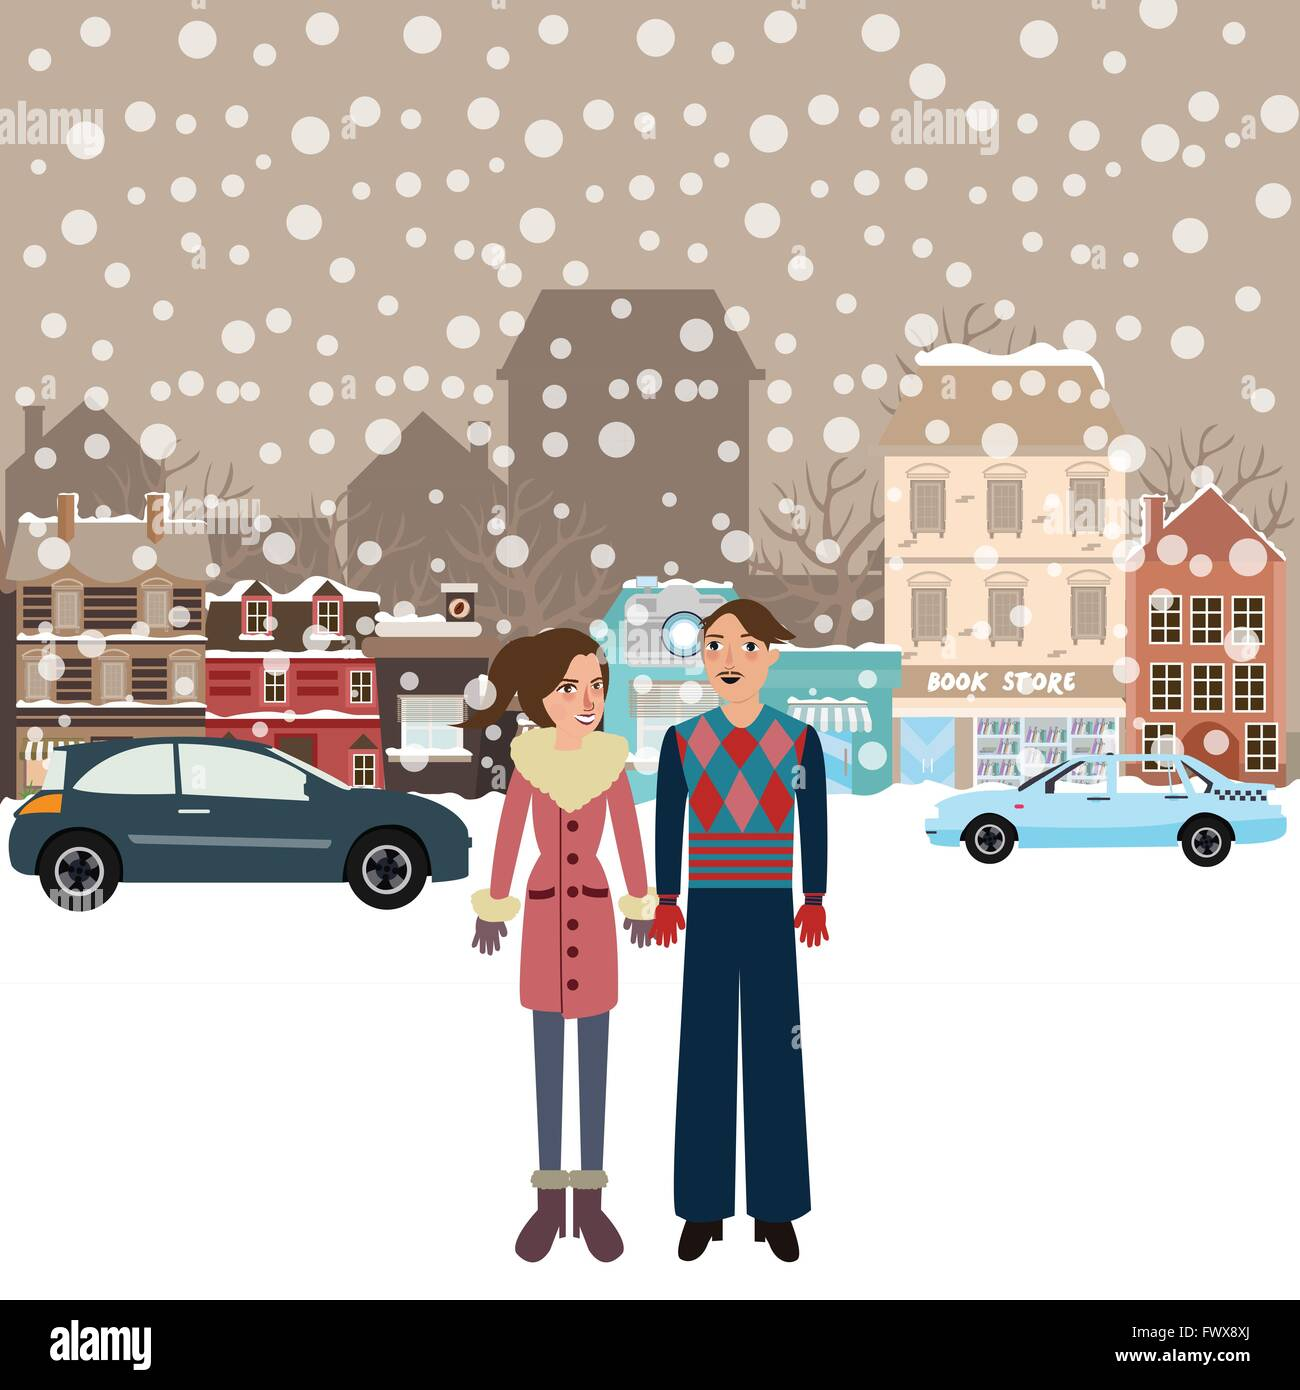 couple man woman male female standing in snow falling winter town wearing jacket car on street city Stock Vector